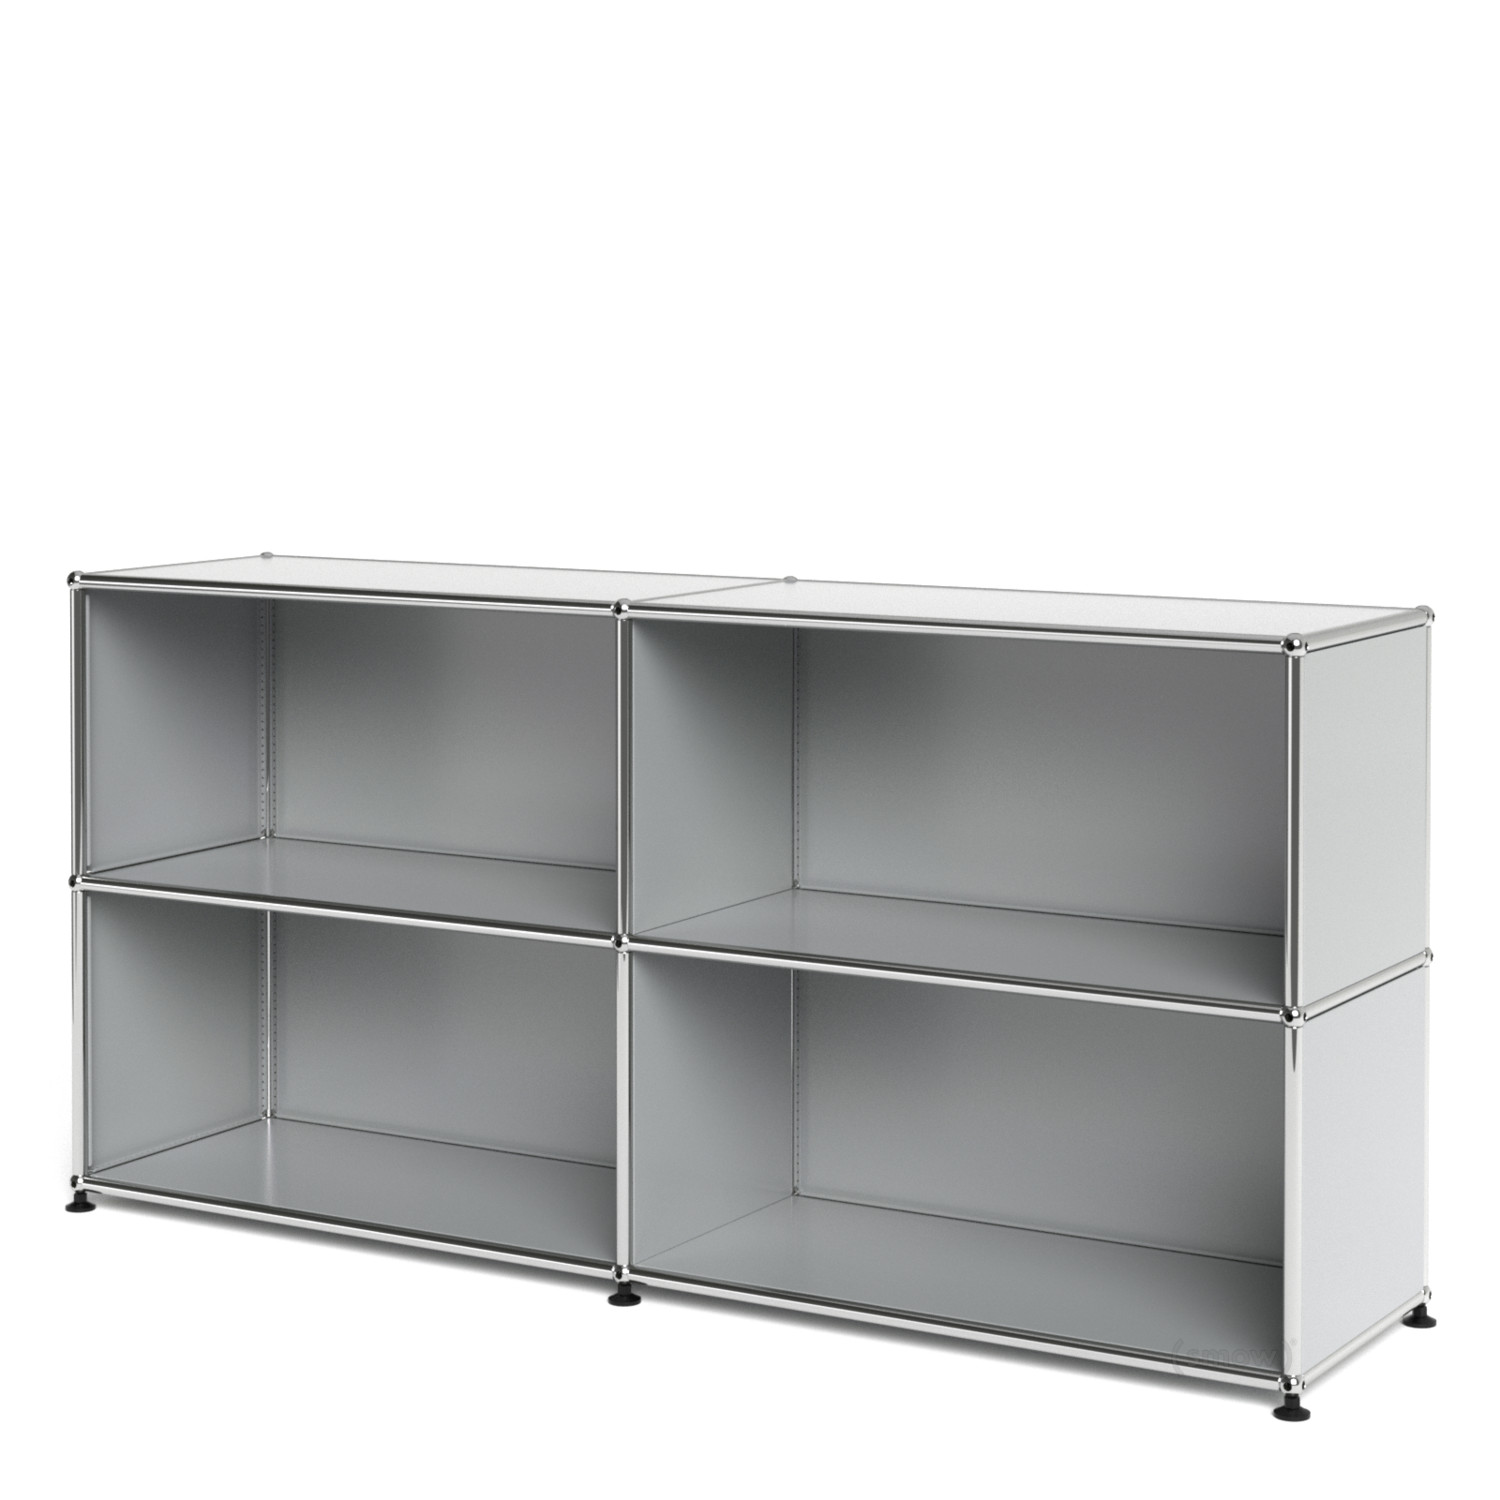 usm haller sideboard l customisable light grey ral 7035 open open by fritz haller paul. Black Bedroom Furniture Sets. Home Design Ideas